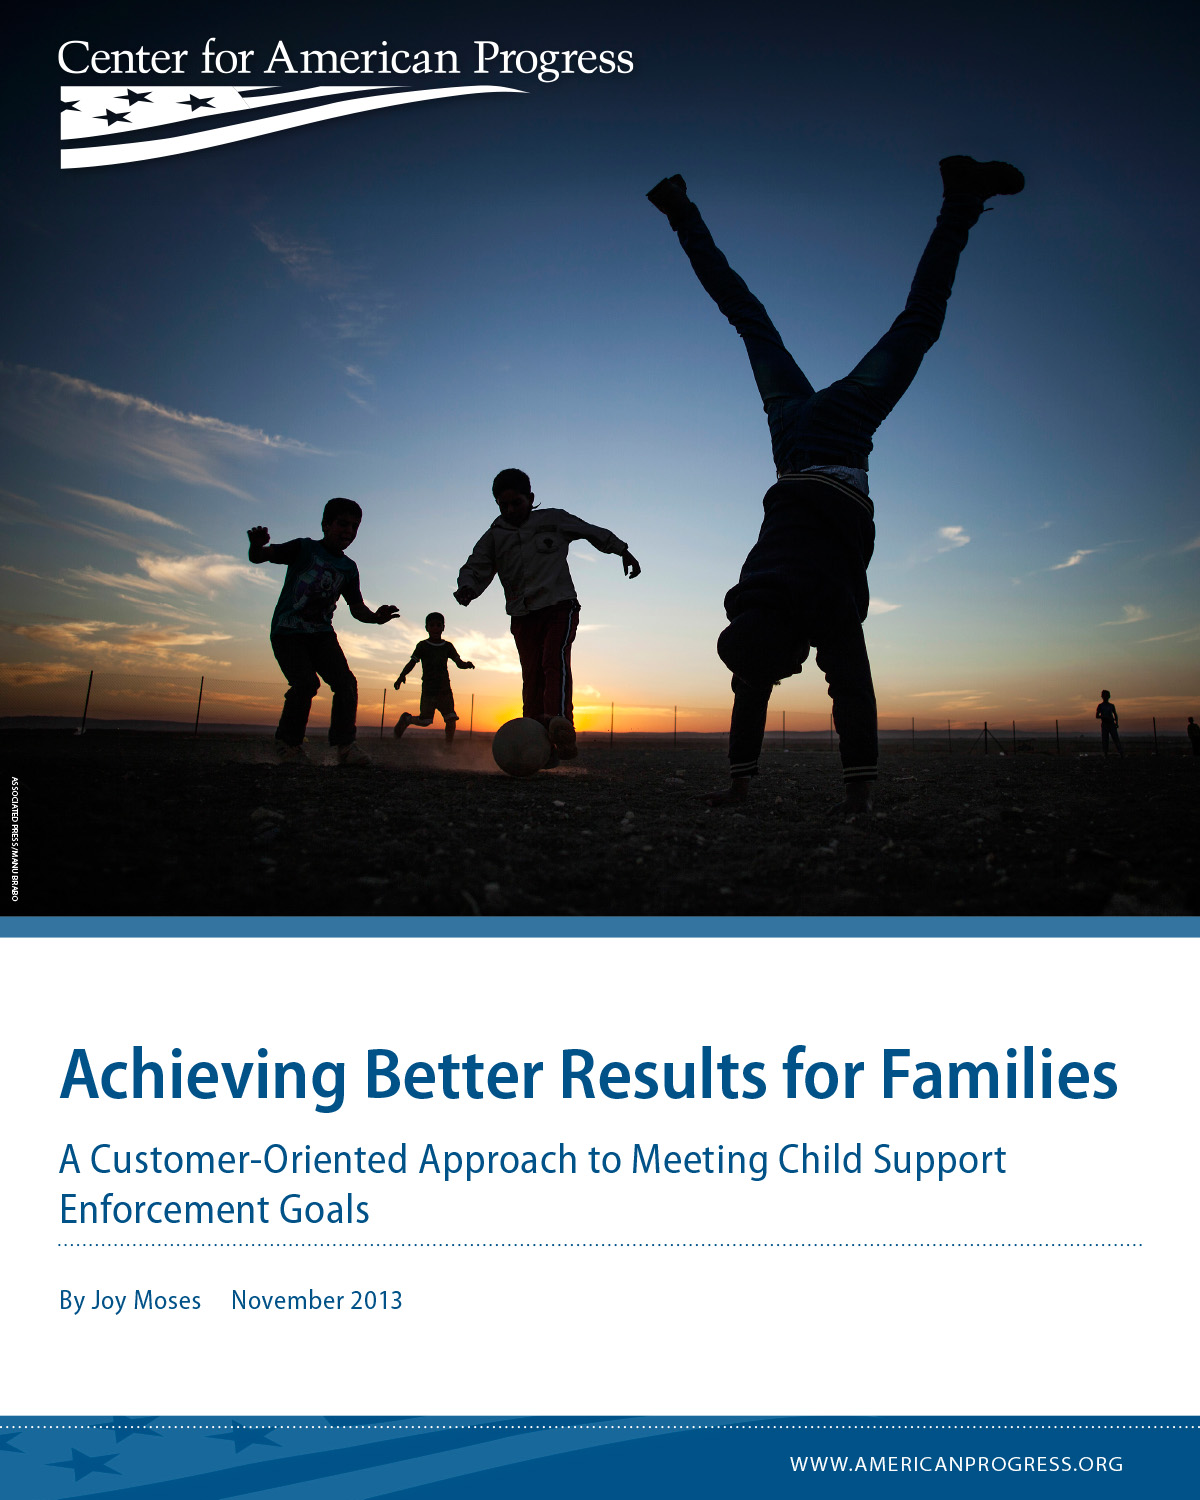 Achieving Better Results for Families